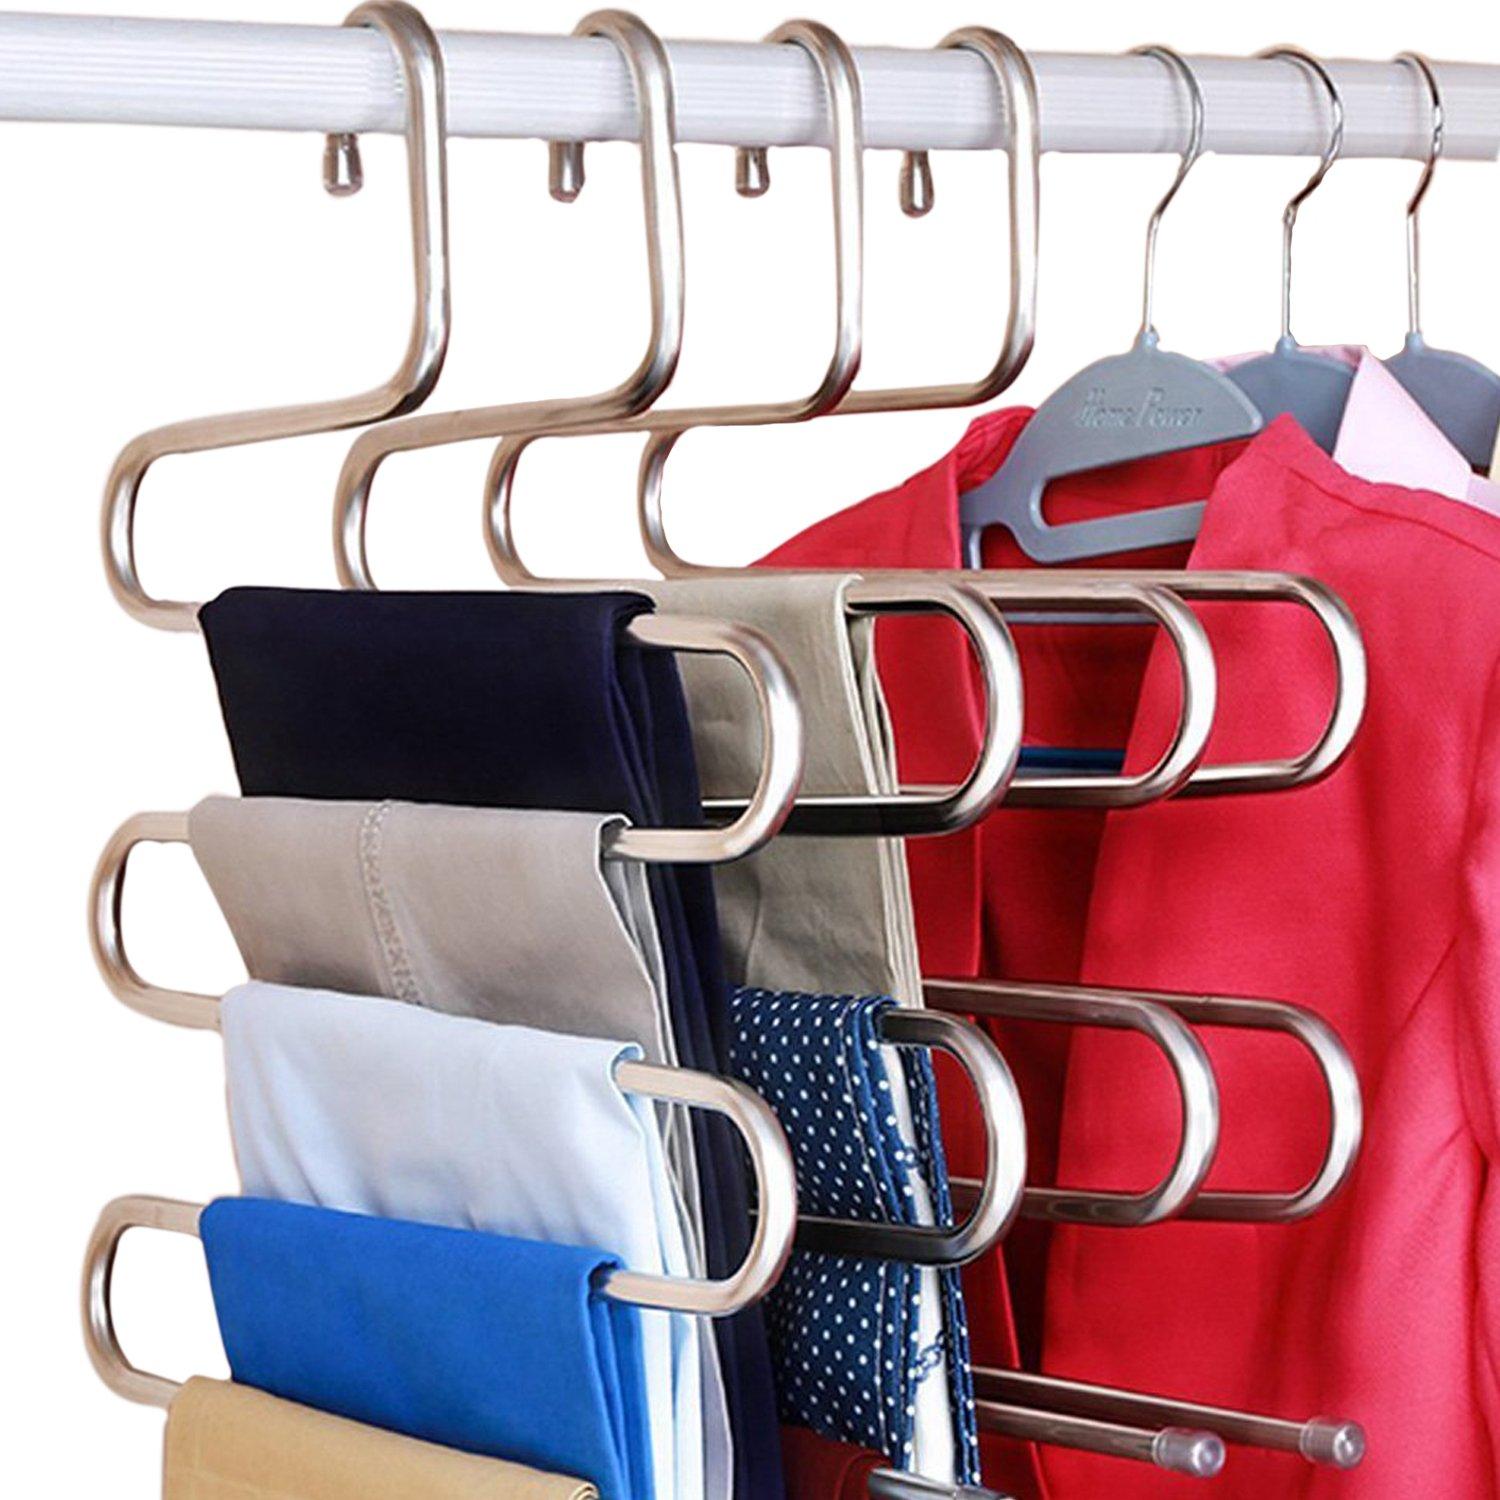 DOIOWN S Type Stainless Steel Clothes Pants Hangers Closet Storage Organizer  For Pants Jeans Scarf Hanging (14.17 X 14.96ins, Set Of 3) (3 Pieces)